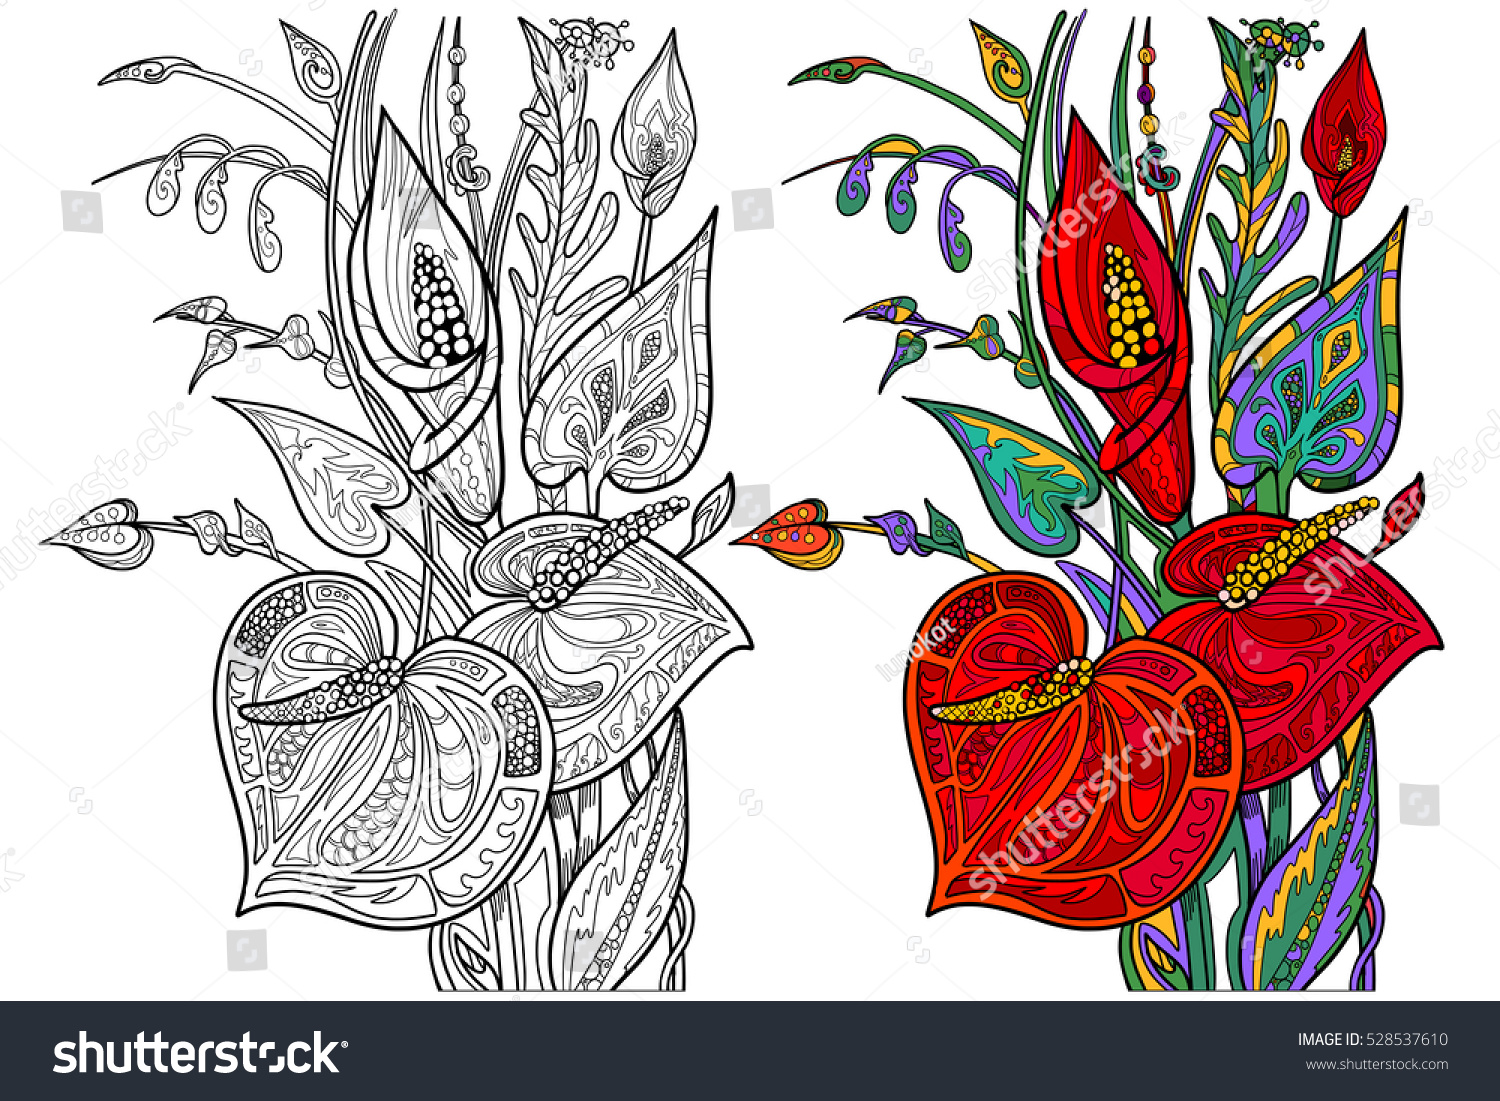 Bouquet Flowers Coloring Book Page Adult Stock Vector HD (Royalty ...